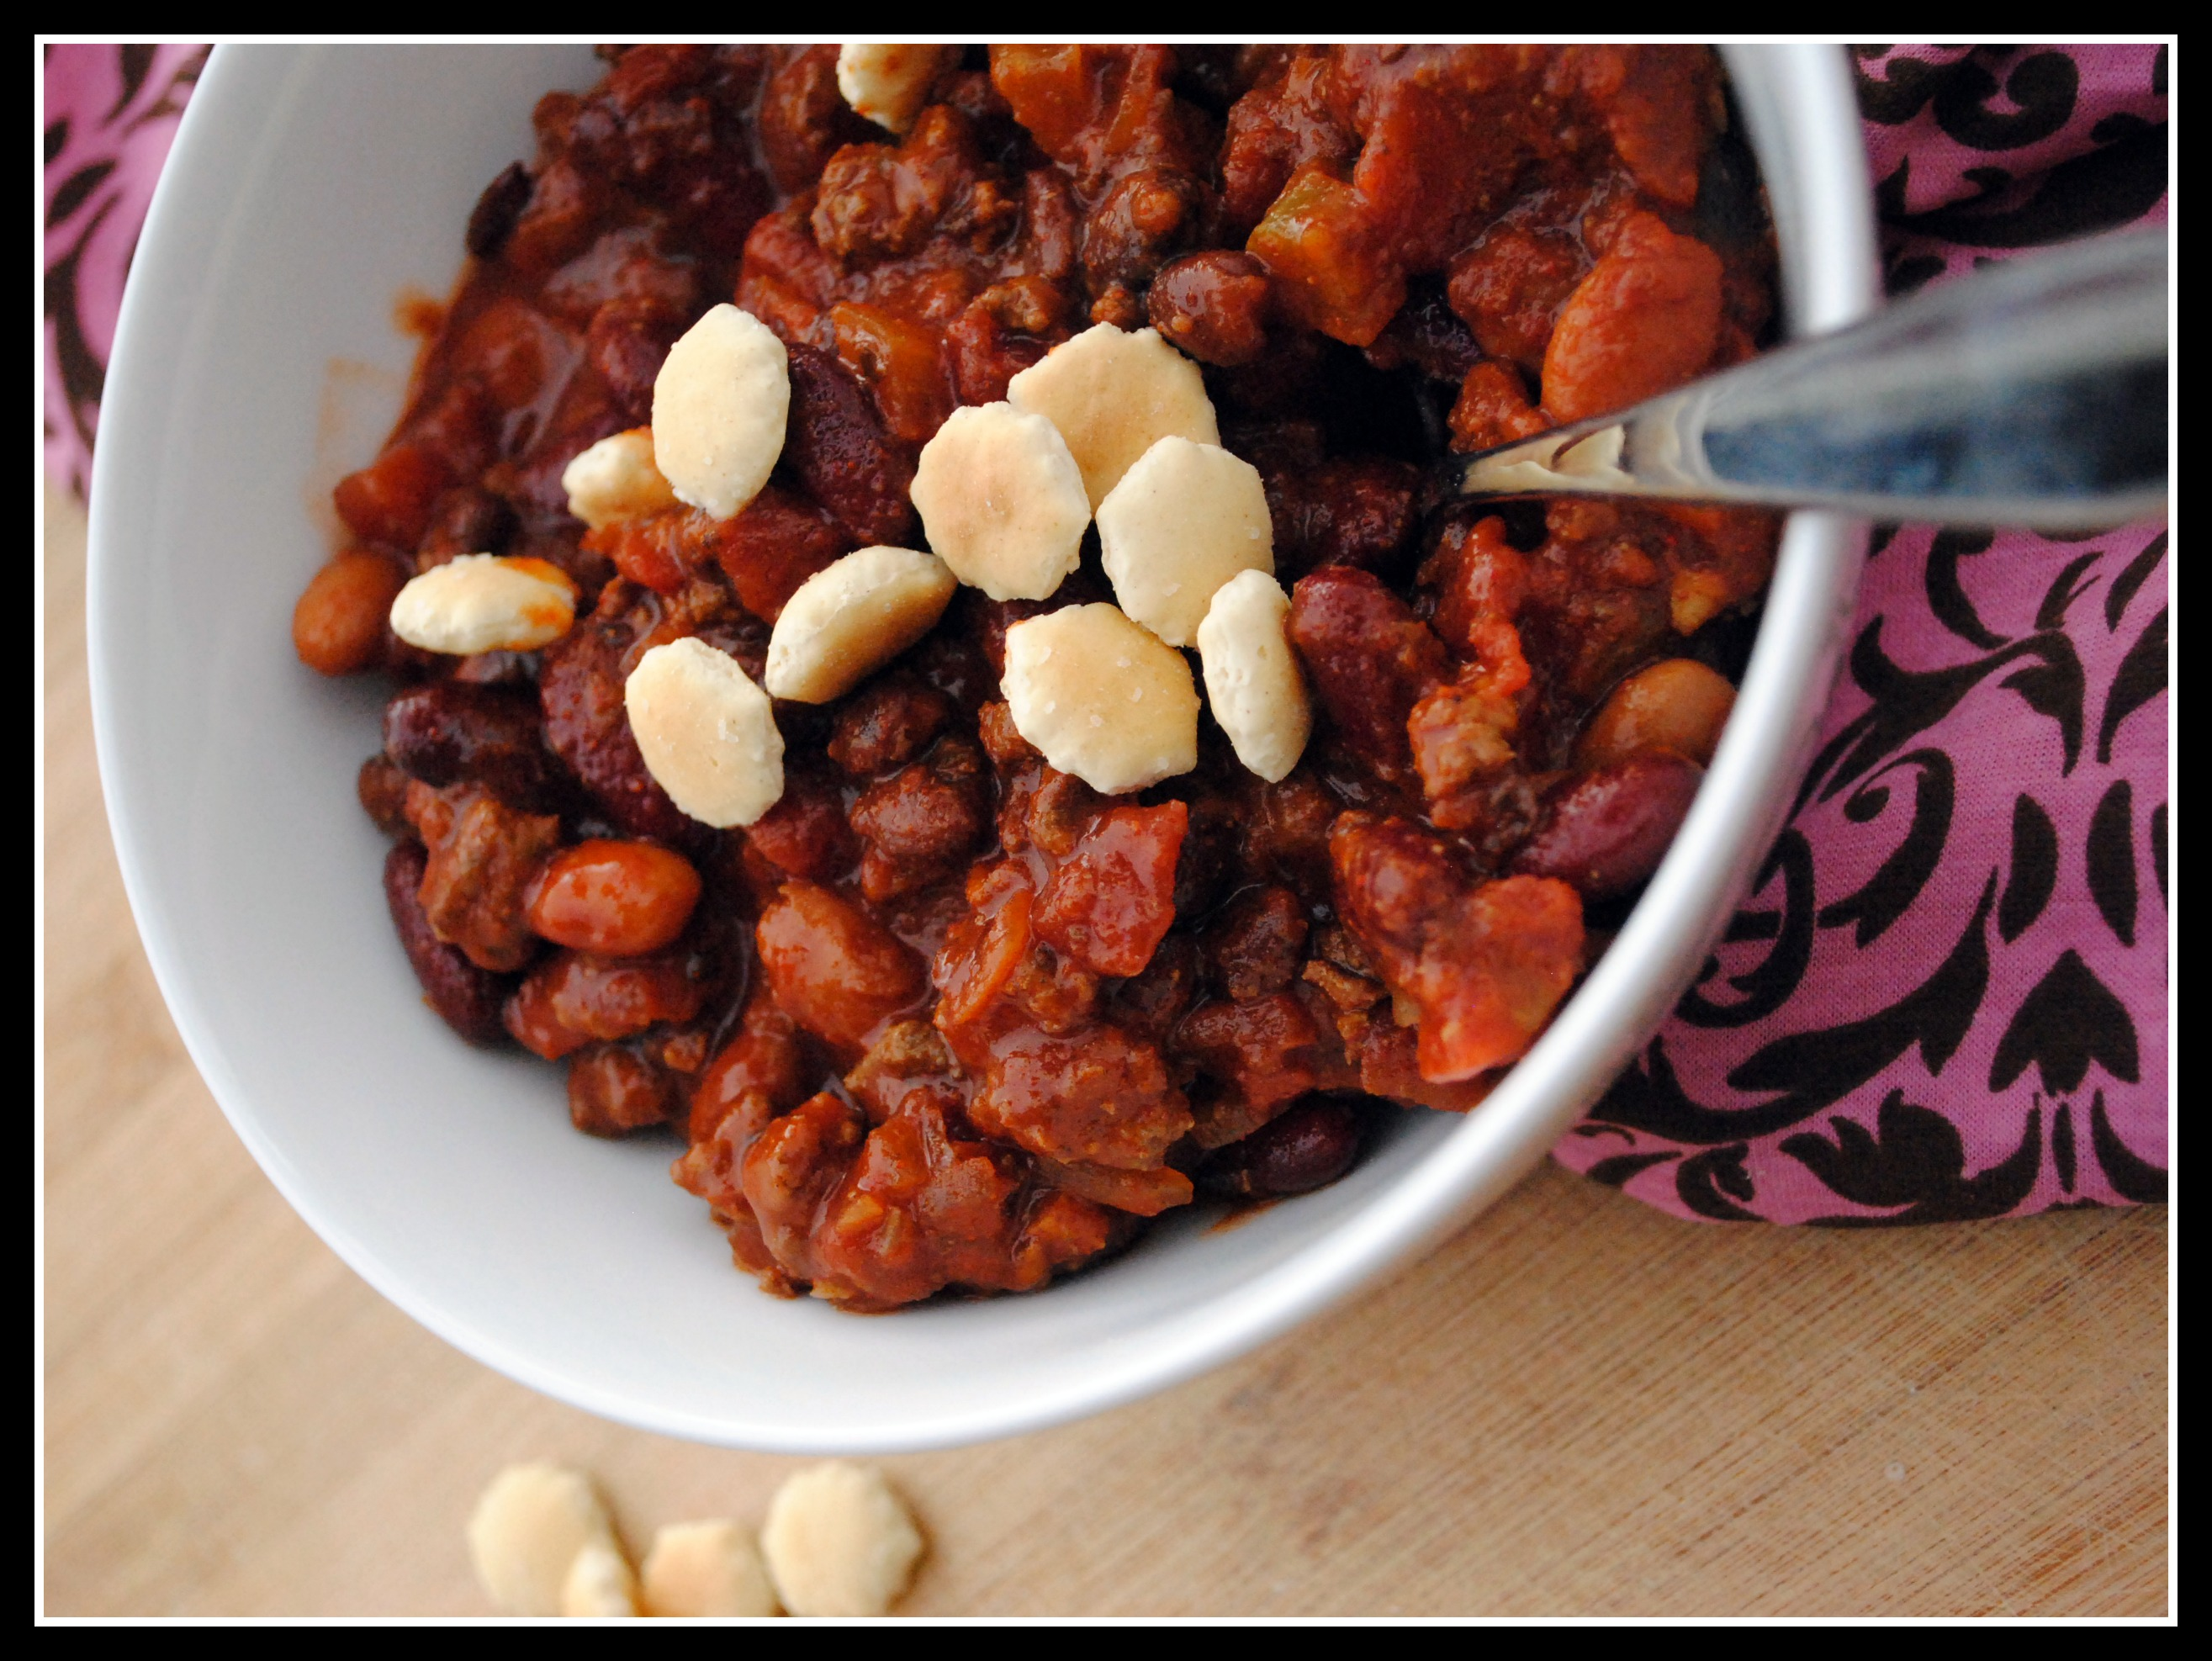 Chili Contest: Entry #4 – Three Bean and Beef Chili (Crock Pot)